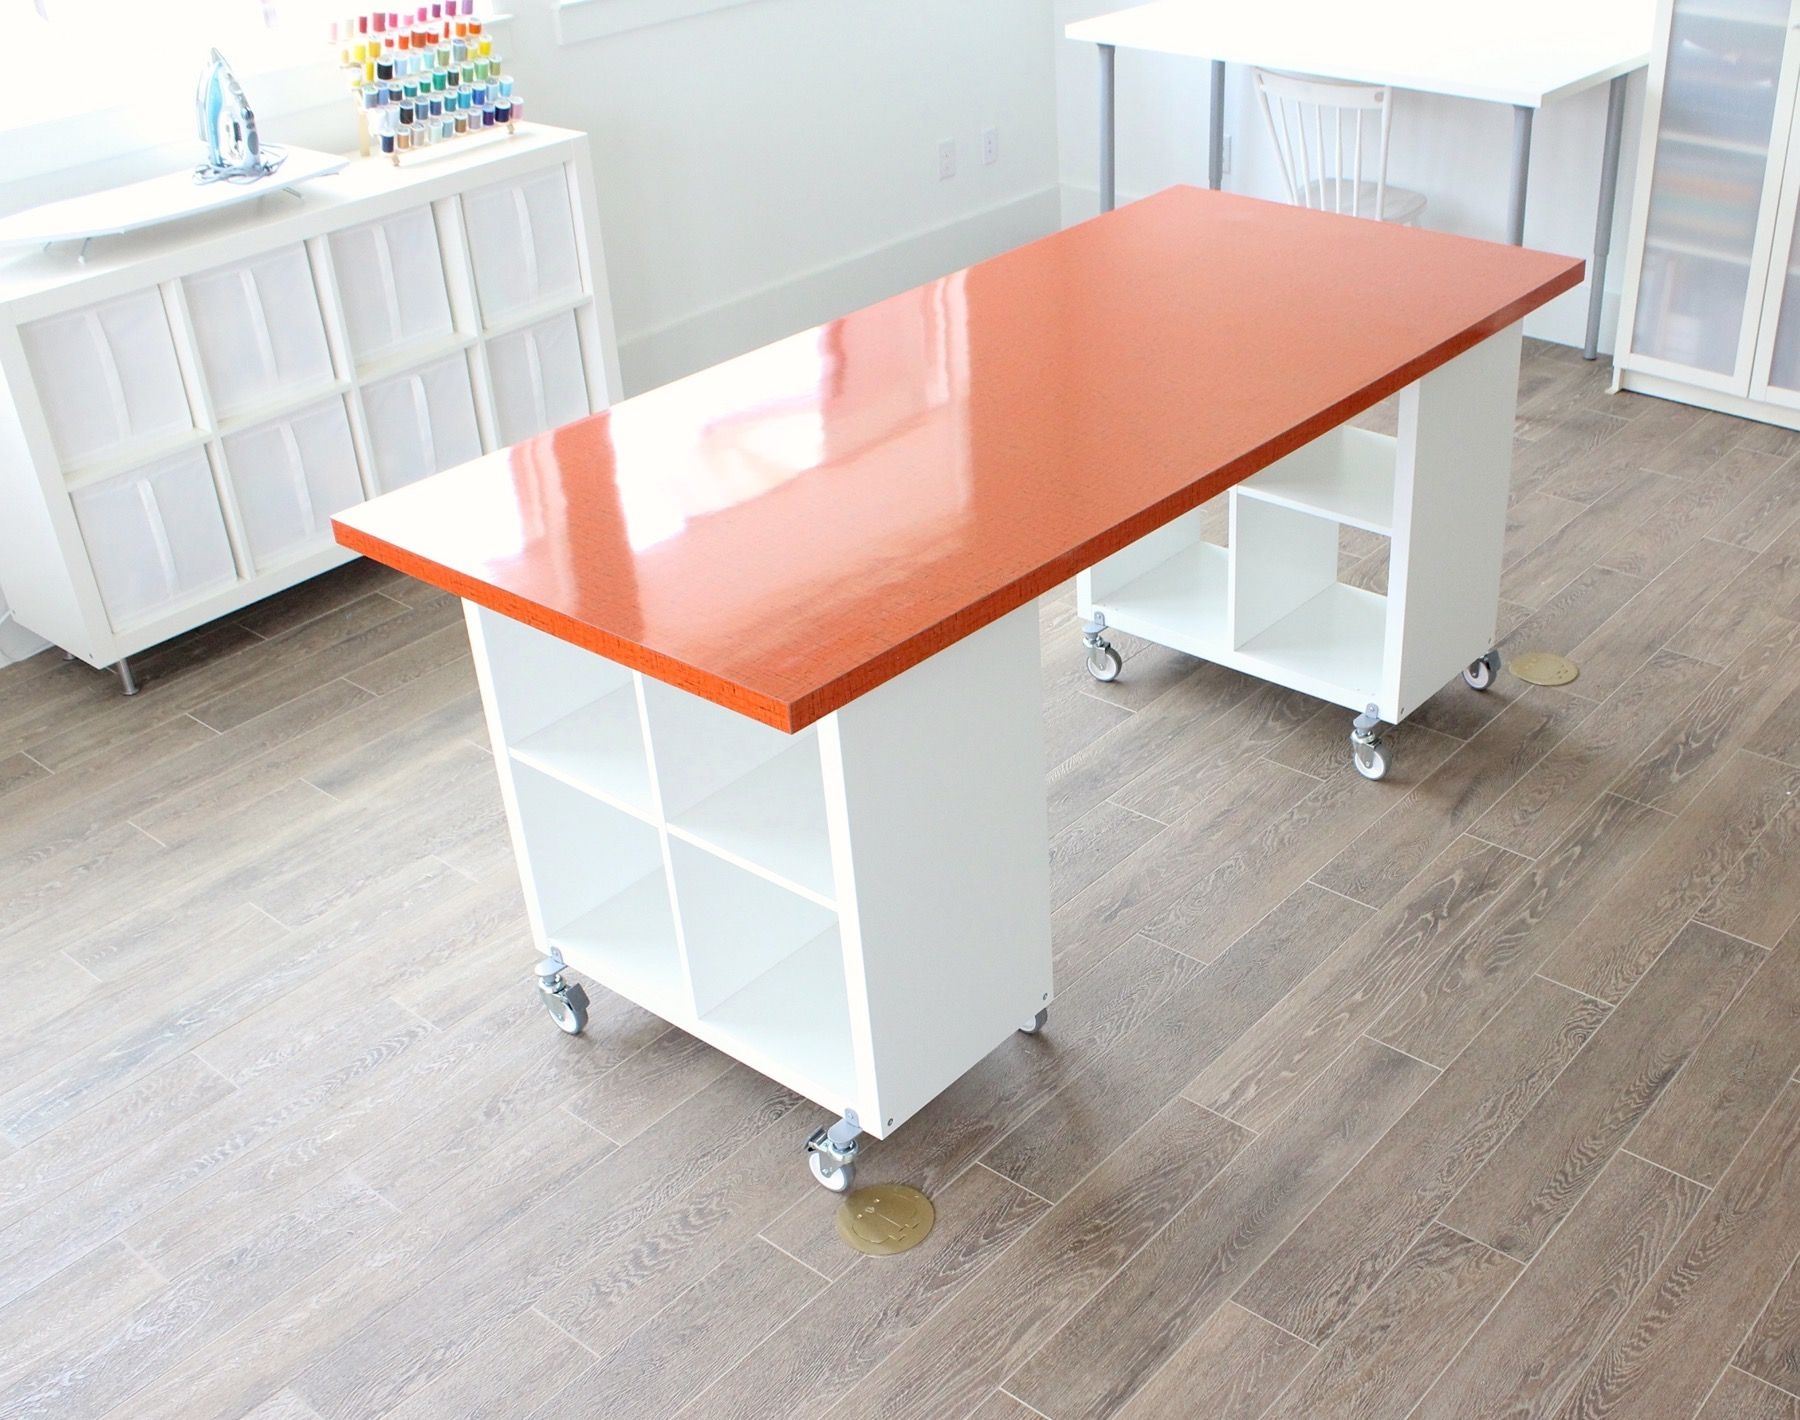 Diy cutting table - Building A New Home The Formica Craft Table Made Everyday